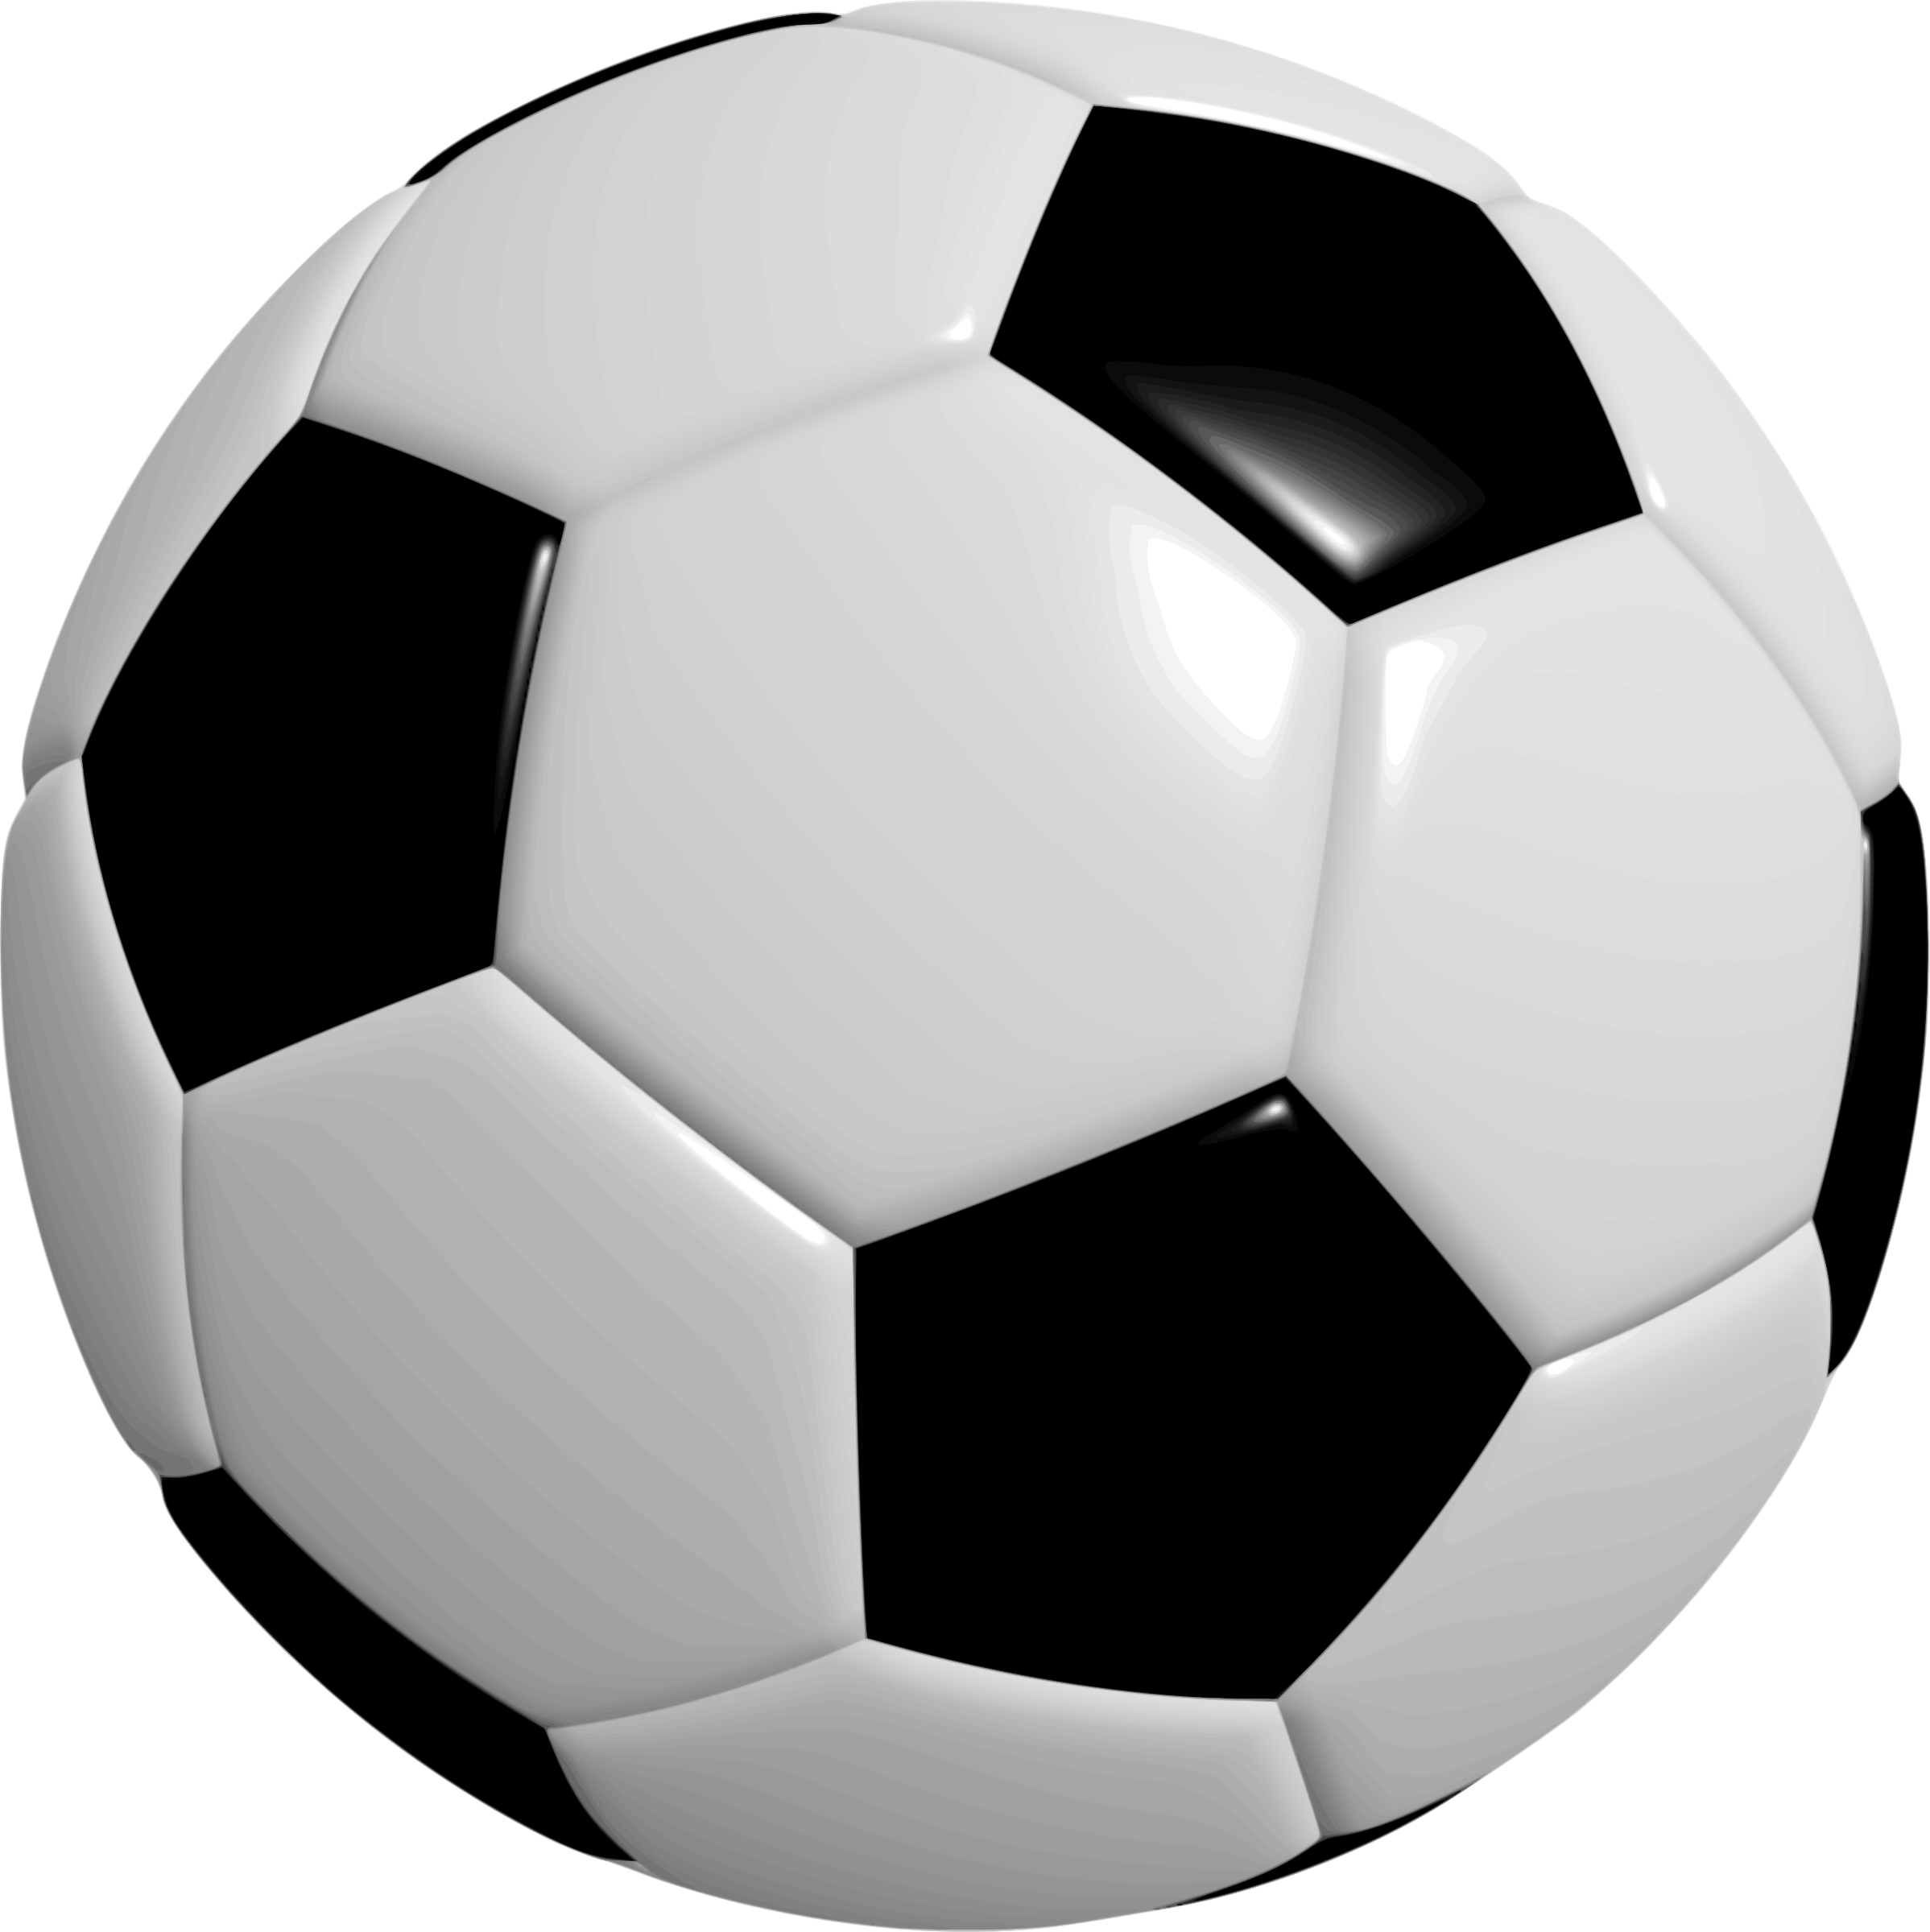 Soccer Ball Png - Football, Transparent background PNG HD thumbnail